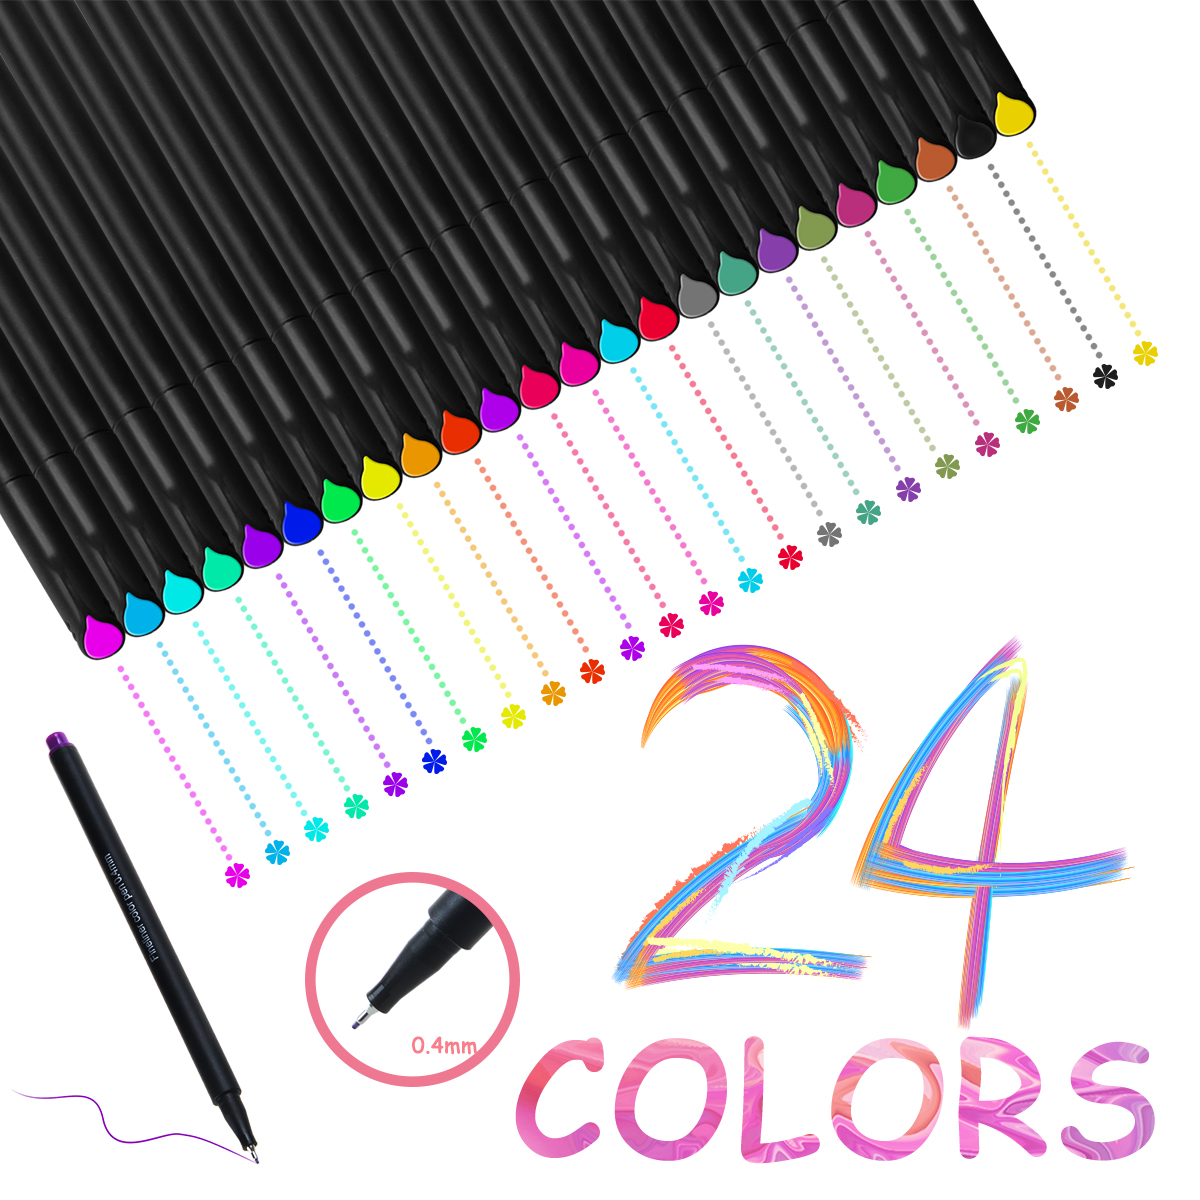 24 Color No Bleed Through Pens Markers Set 0.4 mm Fine Line Colored Sketch Pen